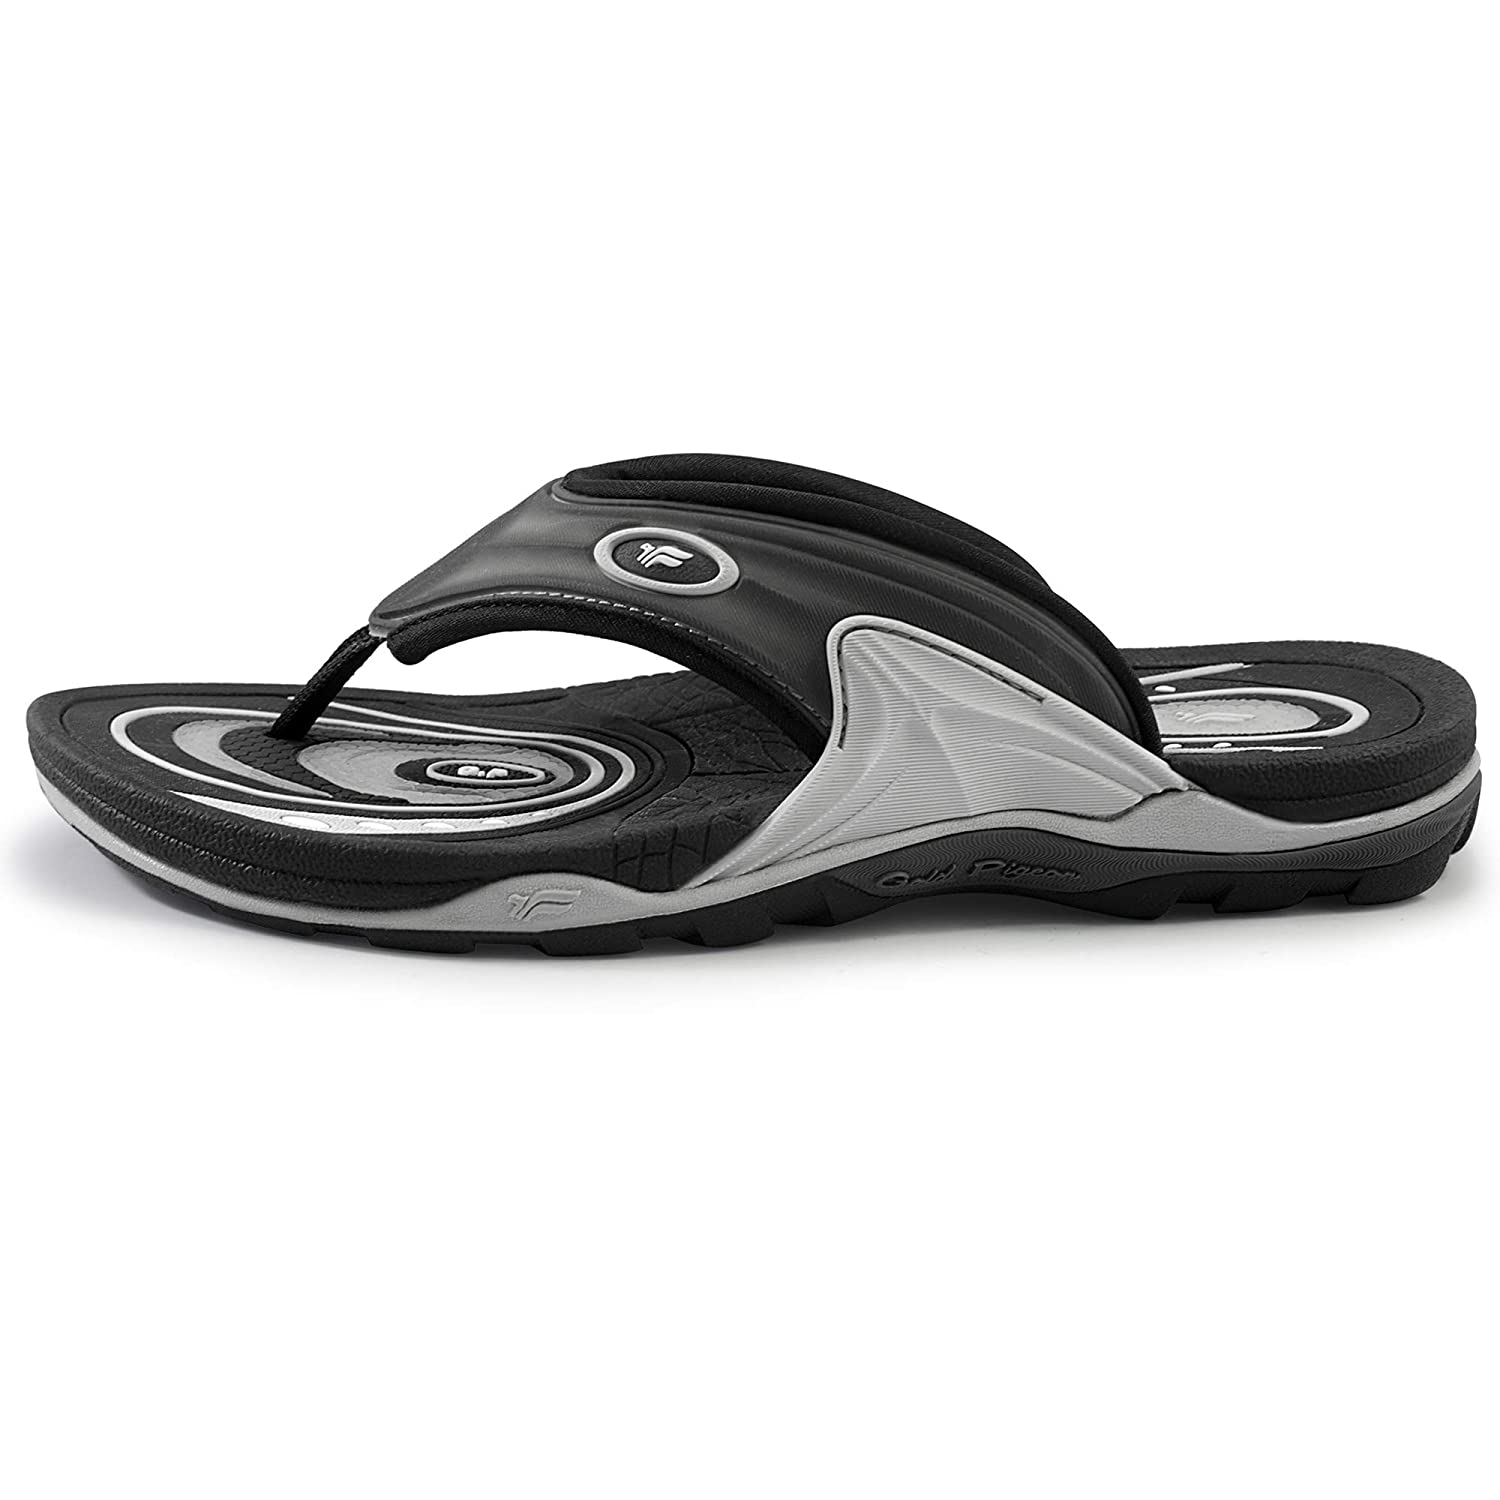 ca29c89ad Amazon.com  Gold Pigeon Shoes Air Cushion Active Sports Flip Flops   Sandals  for Women   Men  Shoes